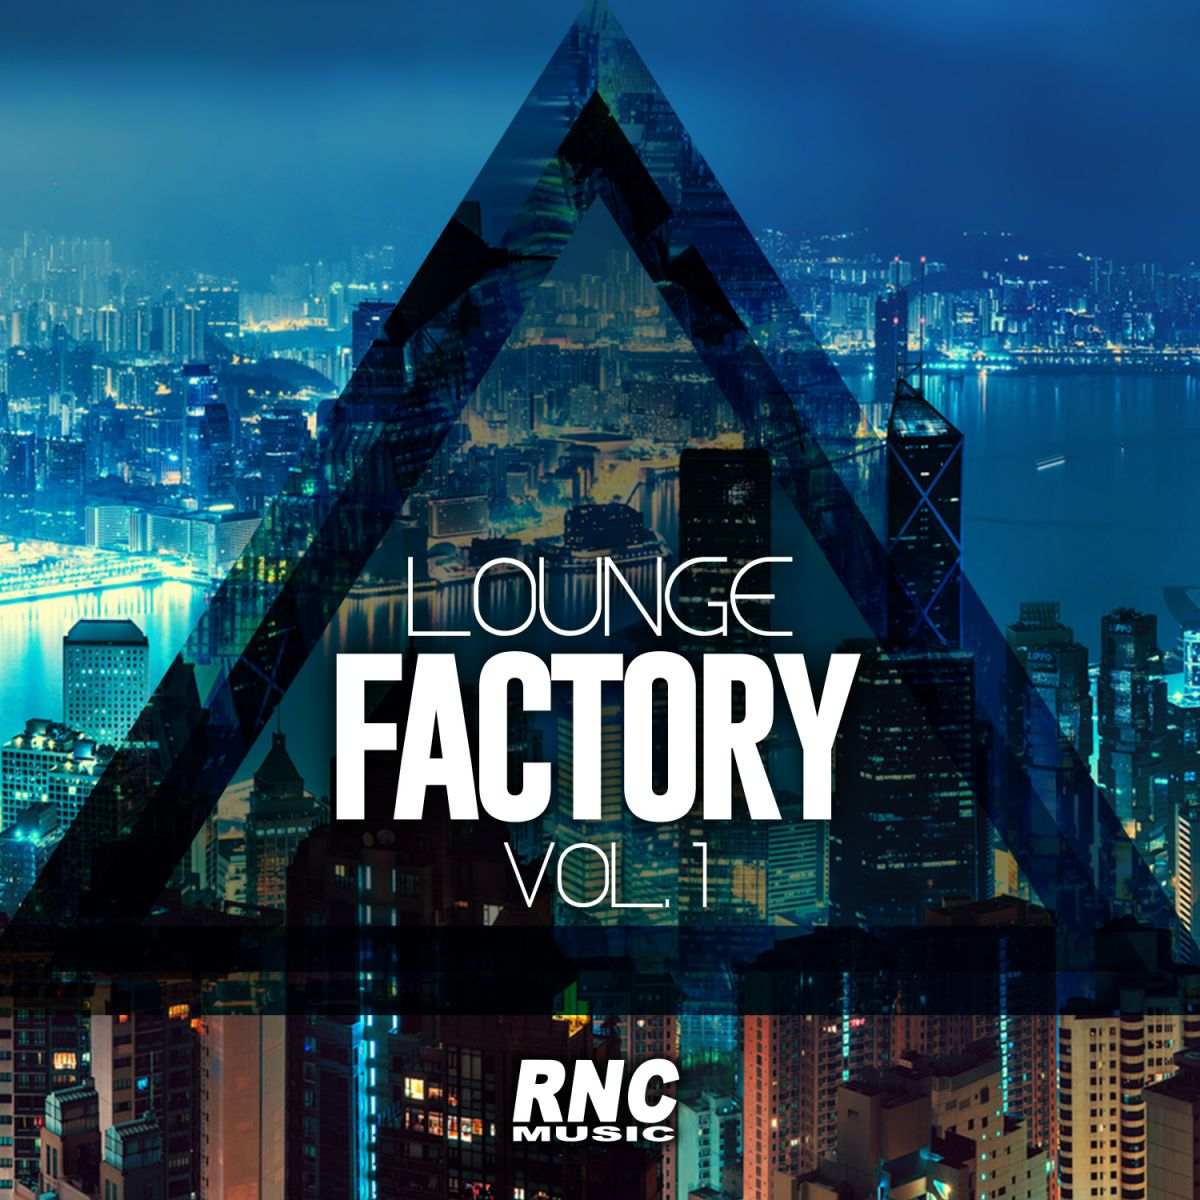 LOUNGE FACTORY Vol. 1